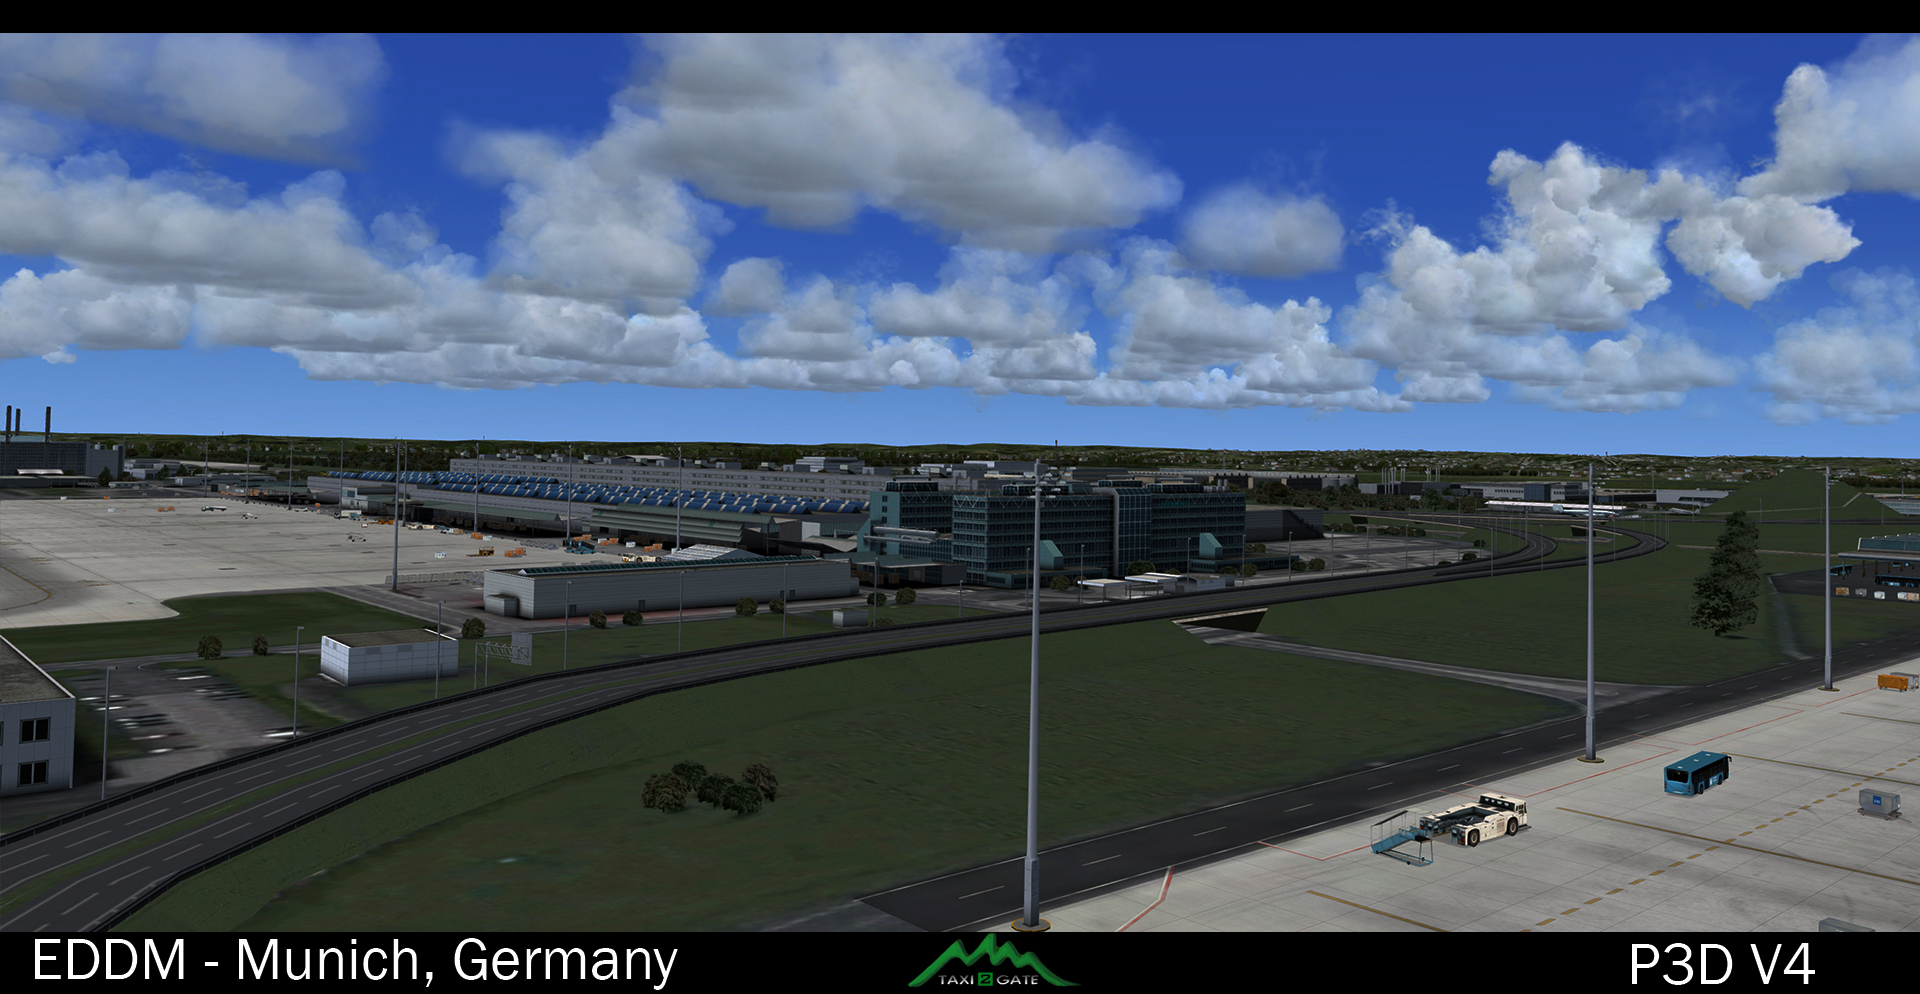 TAXI2GATE - MUNICH AIRPORT EDDM P3D